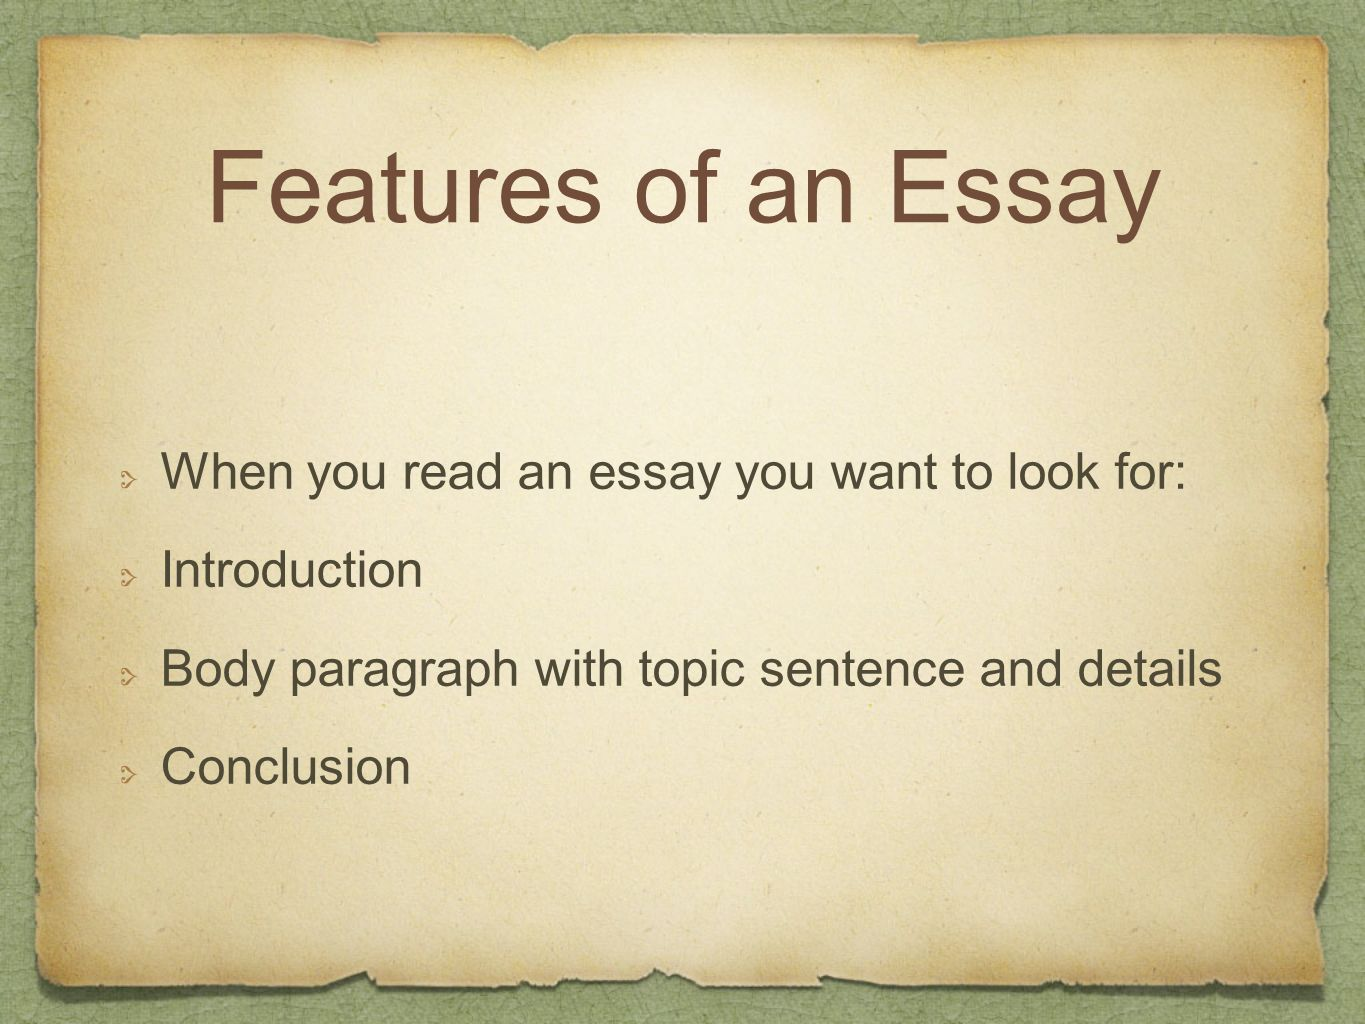 breathing life and deeper meaning into texts ppt features of an essay when you an essay you want to look for